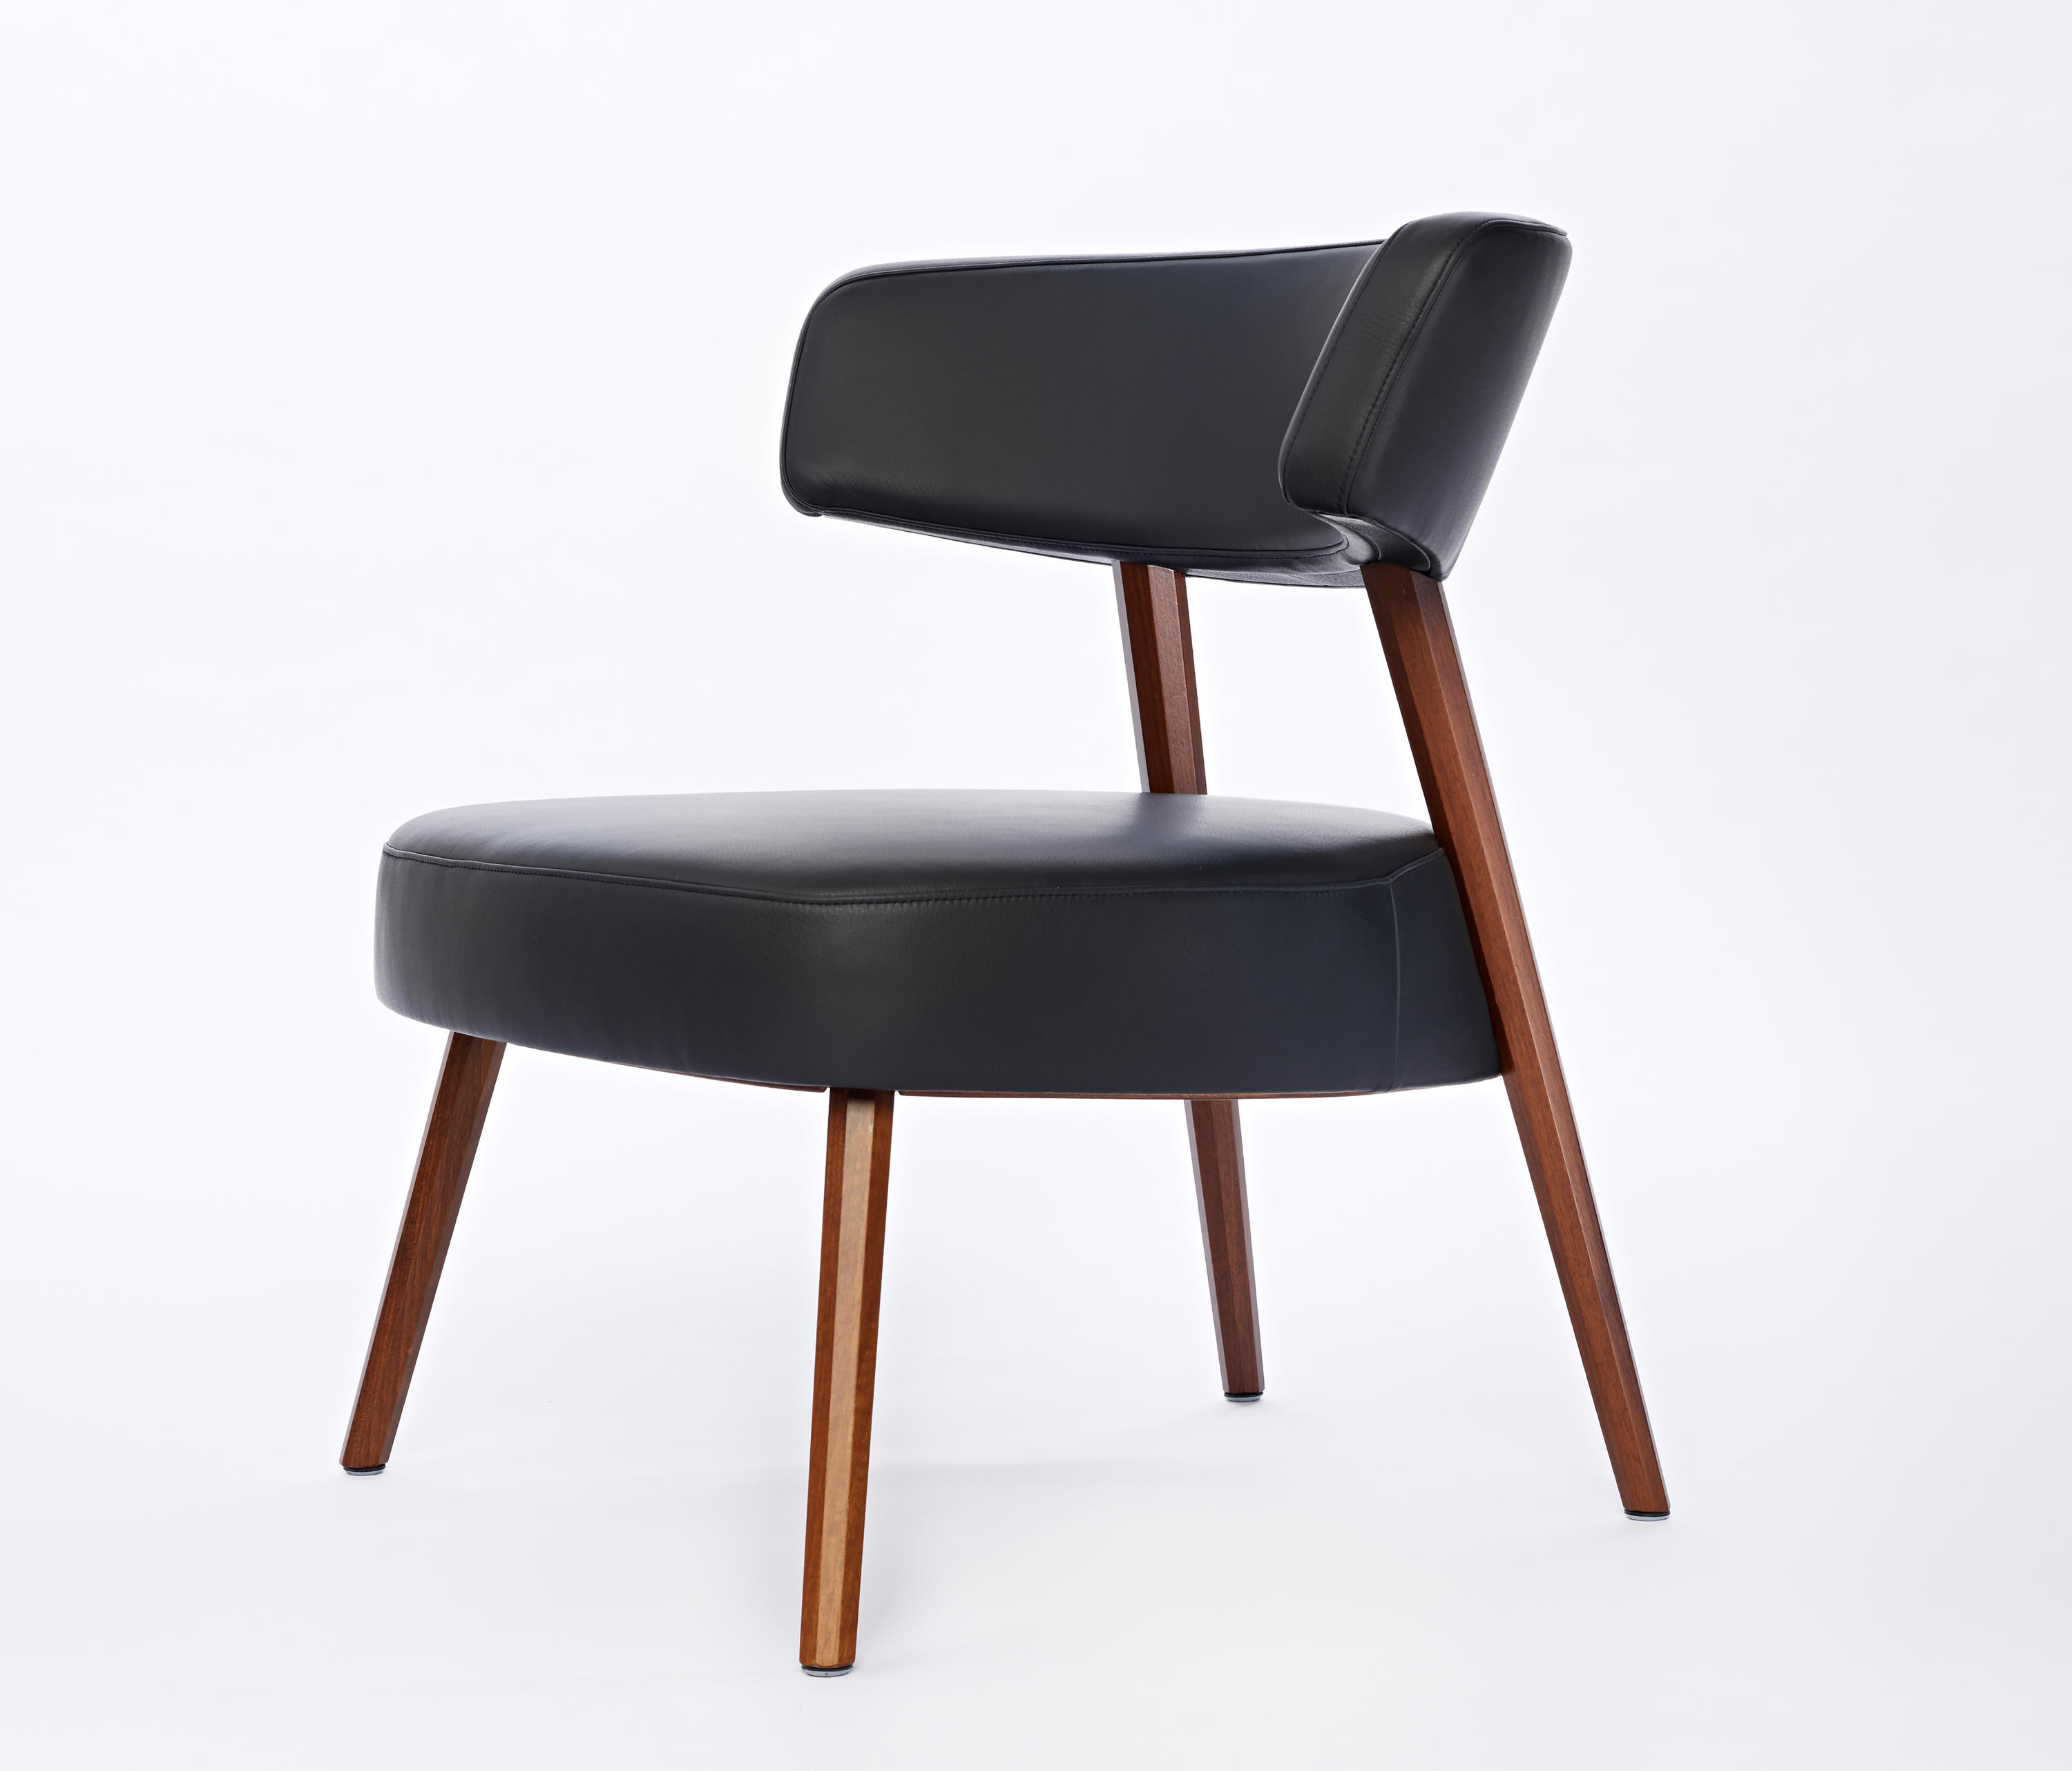 ... Marlon Lounge Chair By AXEL VEIT | Lounge Chairs ...